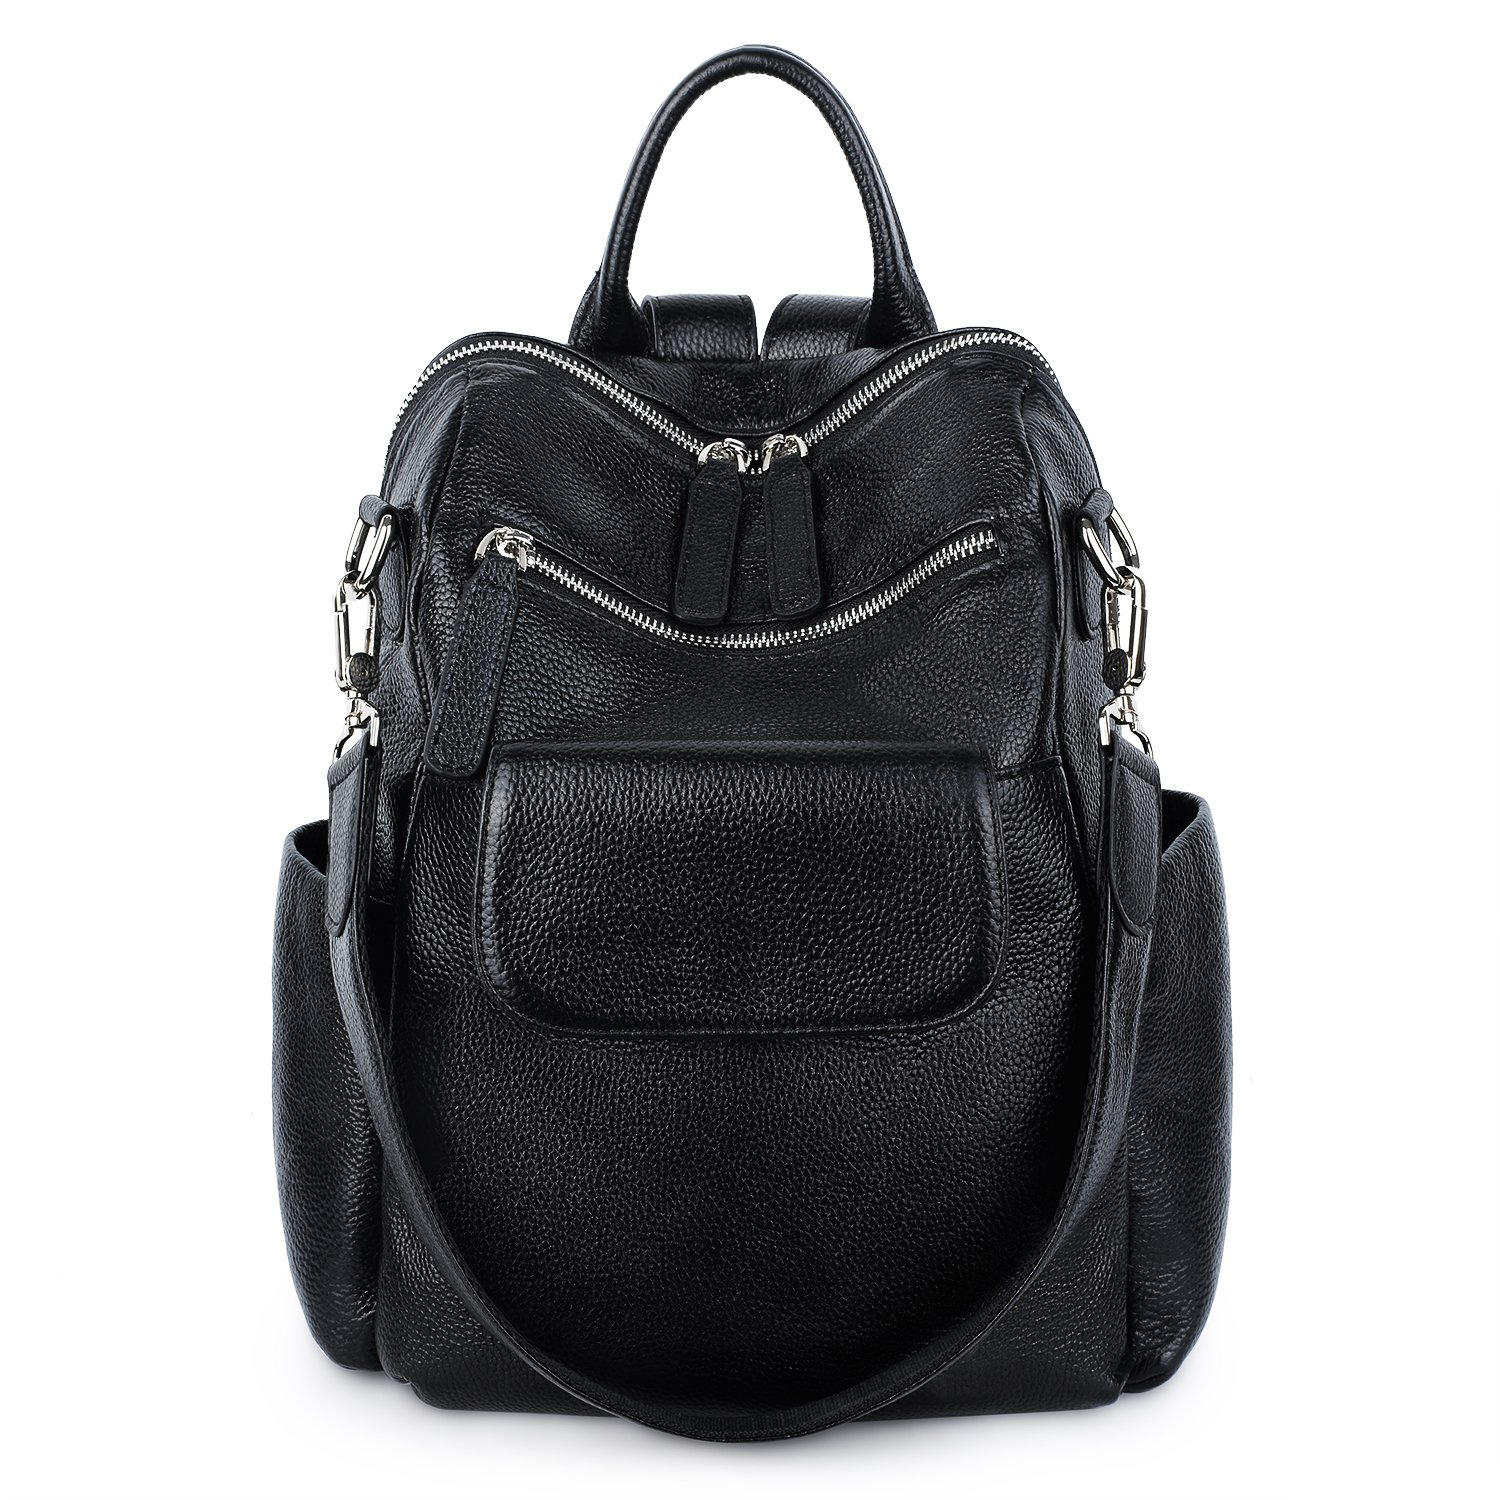 Amazon.com  YALUXE womens Leather Backpack Casual Fashion Style School Bag  for Girls Rucksack Backpack for women  Clothing 745212e67f